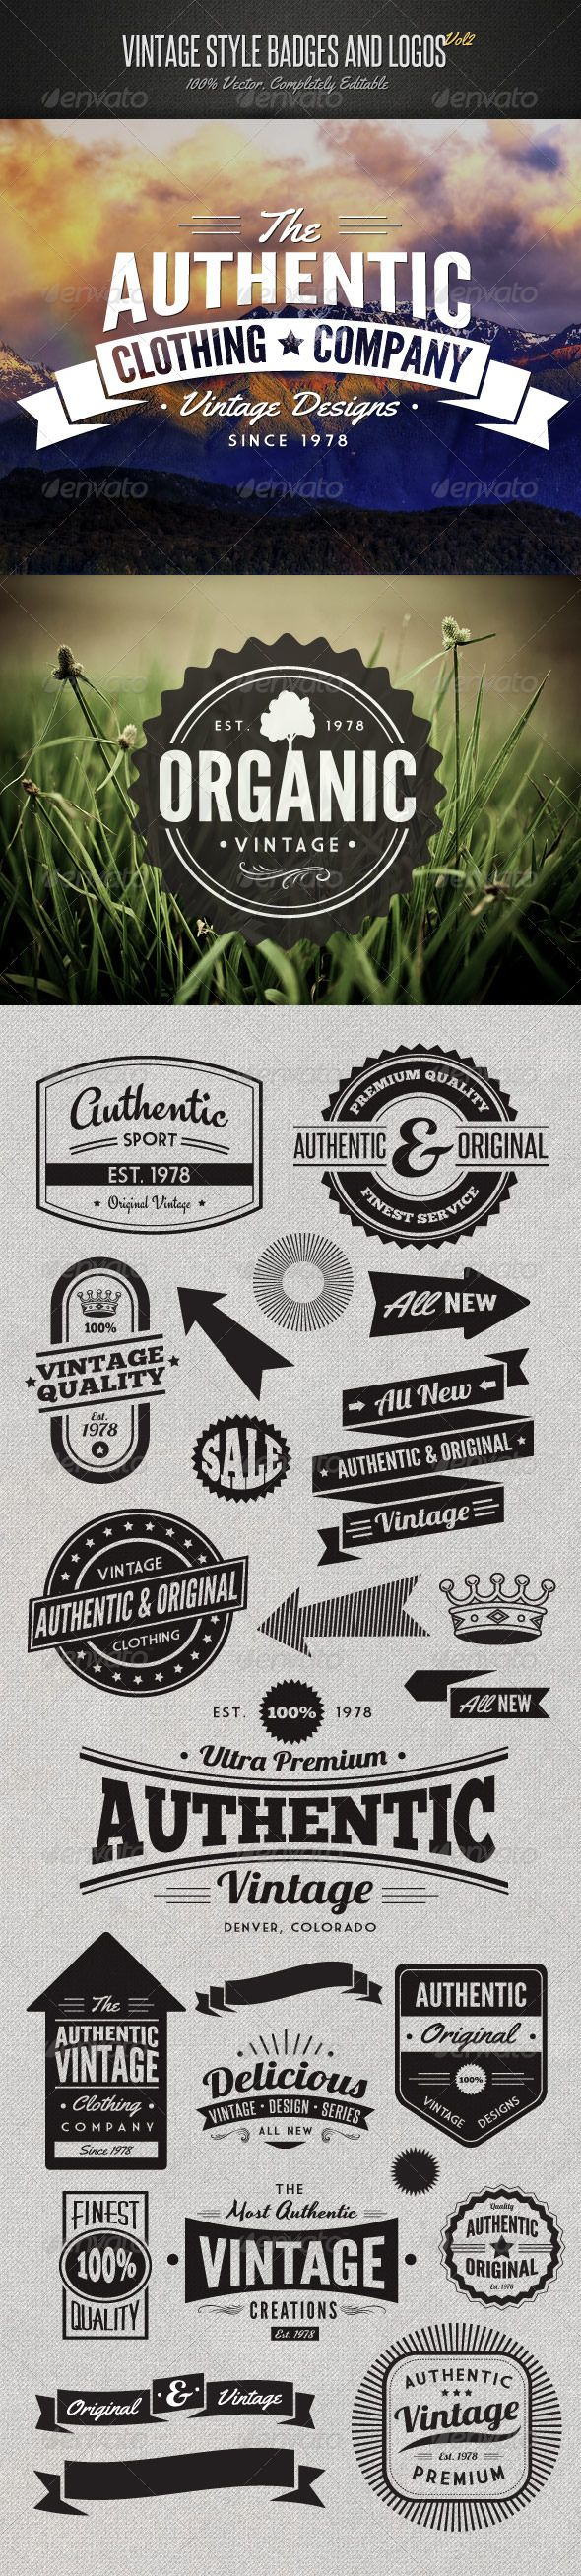 Vintage Style Badges and Logos | #corporate #branding #creative #logo #personalized #identity #design #corporatedesign < repinned by an #advertising agency from #Hamburg / #Germany - www.BlickeDeeler.de